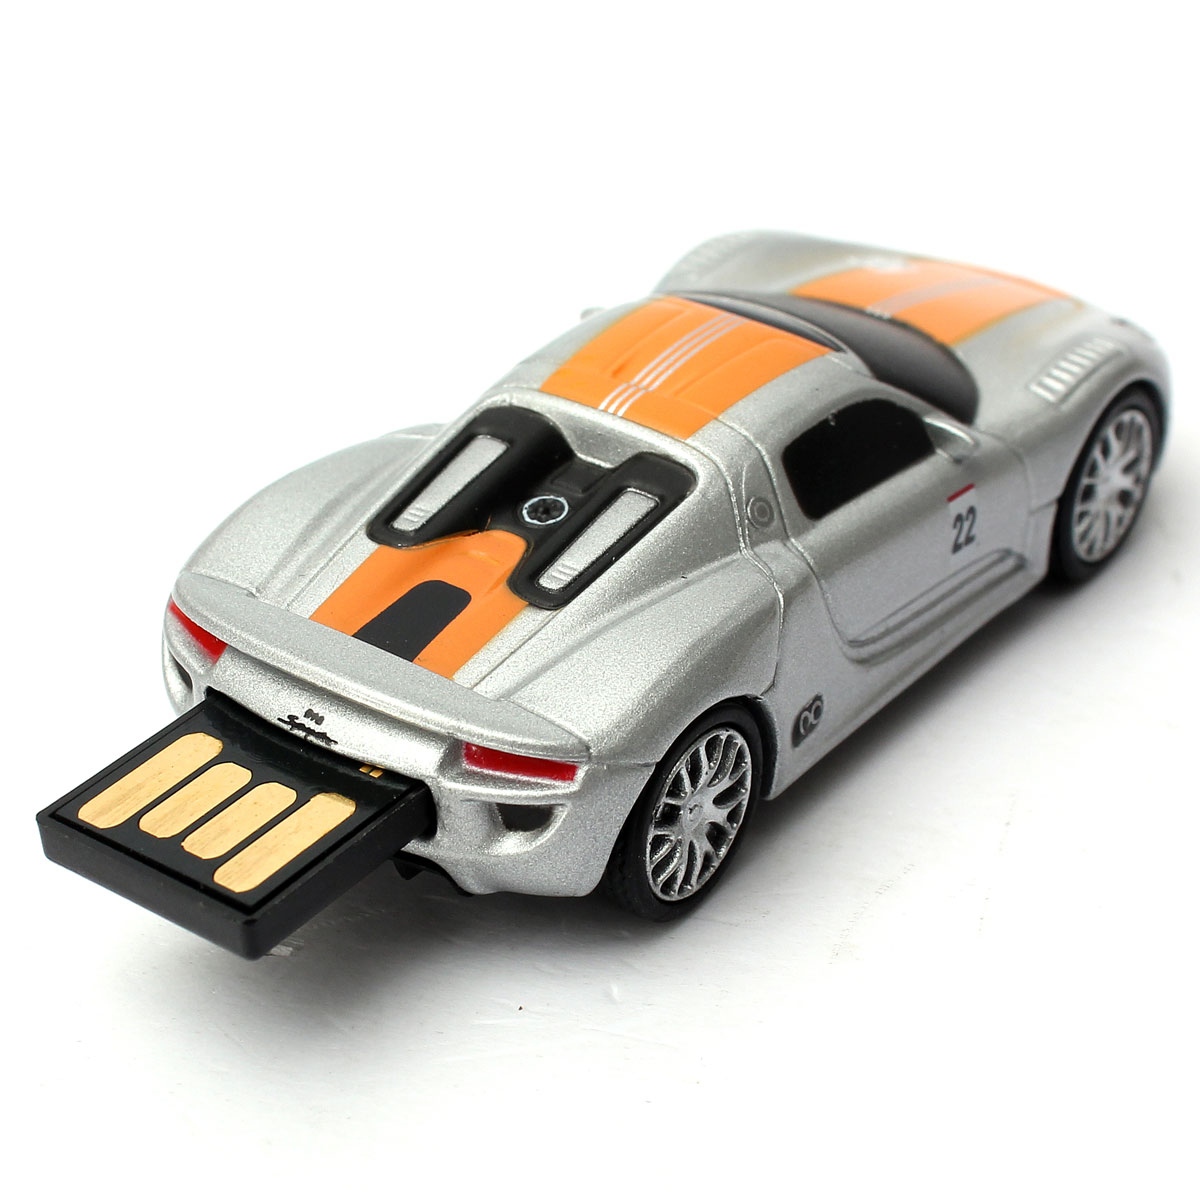 8GB Fashion Car Model USB 2.0 Flash Memory Thumb Stick Storage Pen Drive U Disk